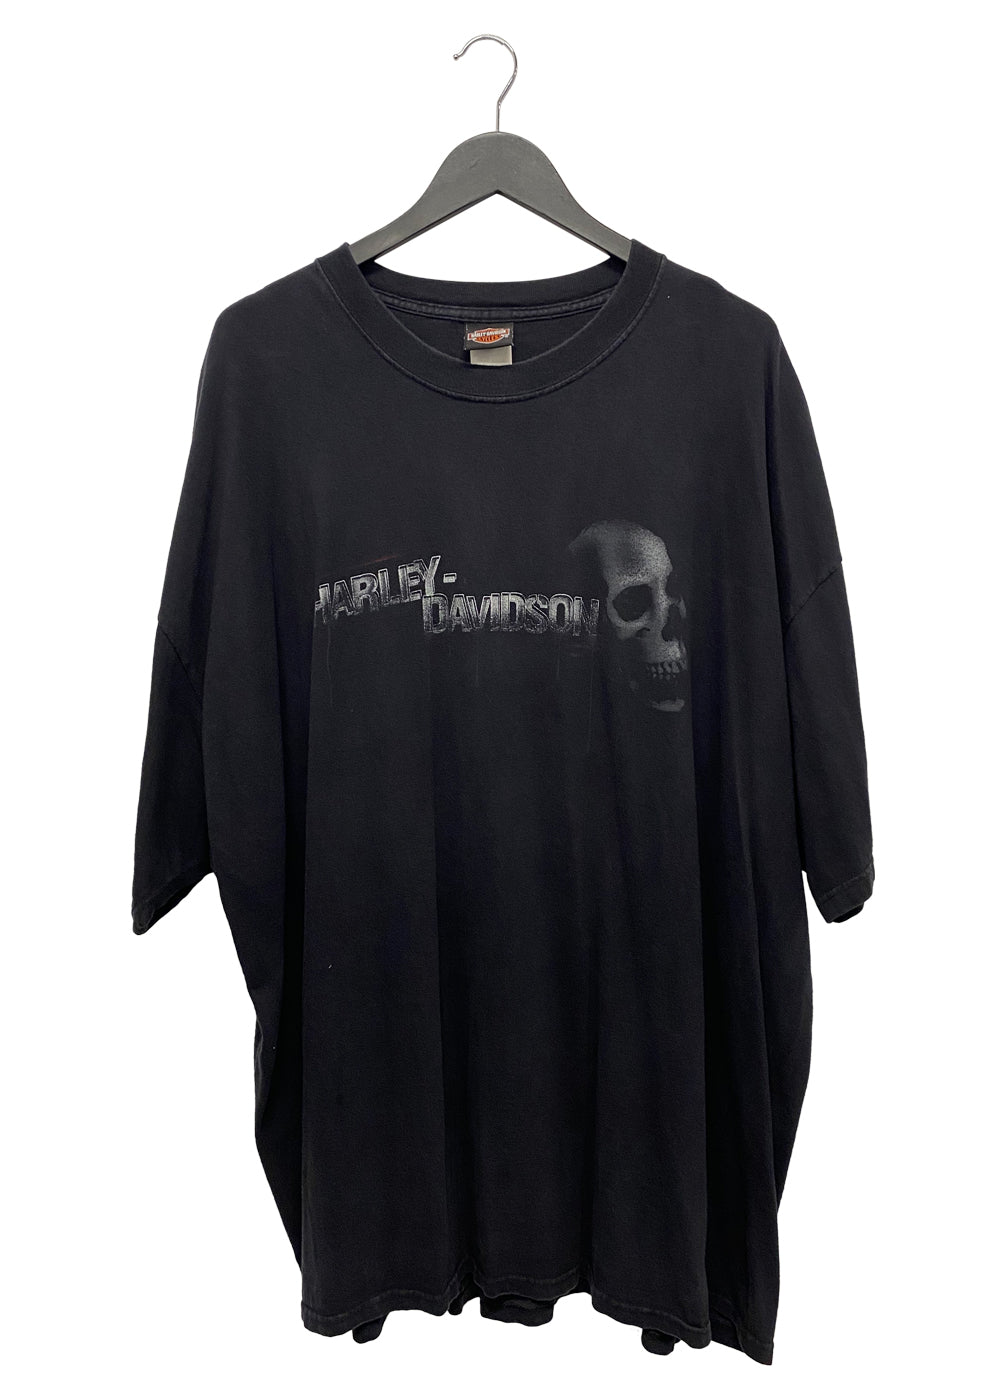 PAUL McCARTNEY 'DRIVING U.S.A TOUR 2002' COLLECTOR TEE